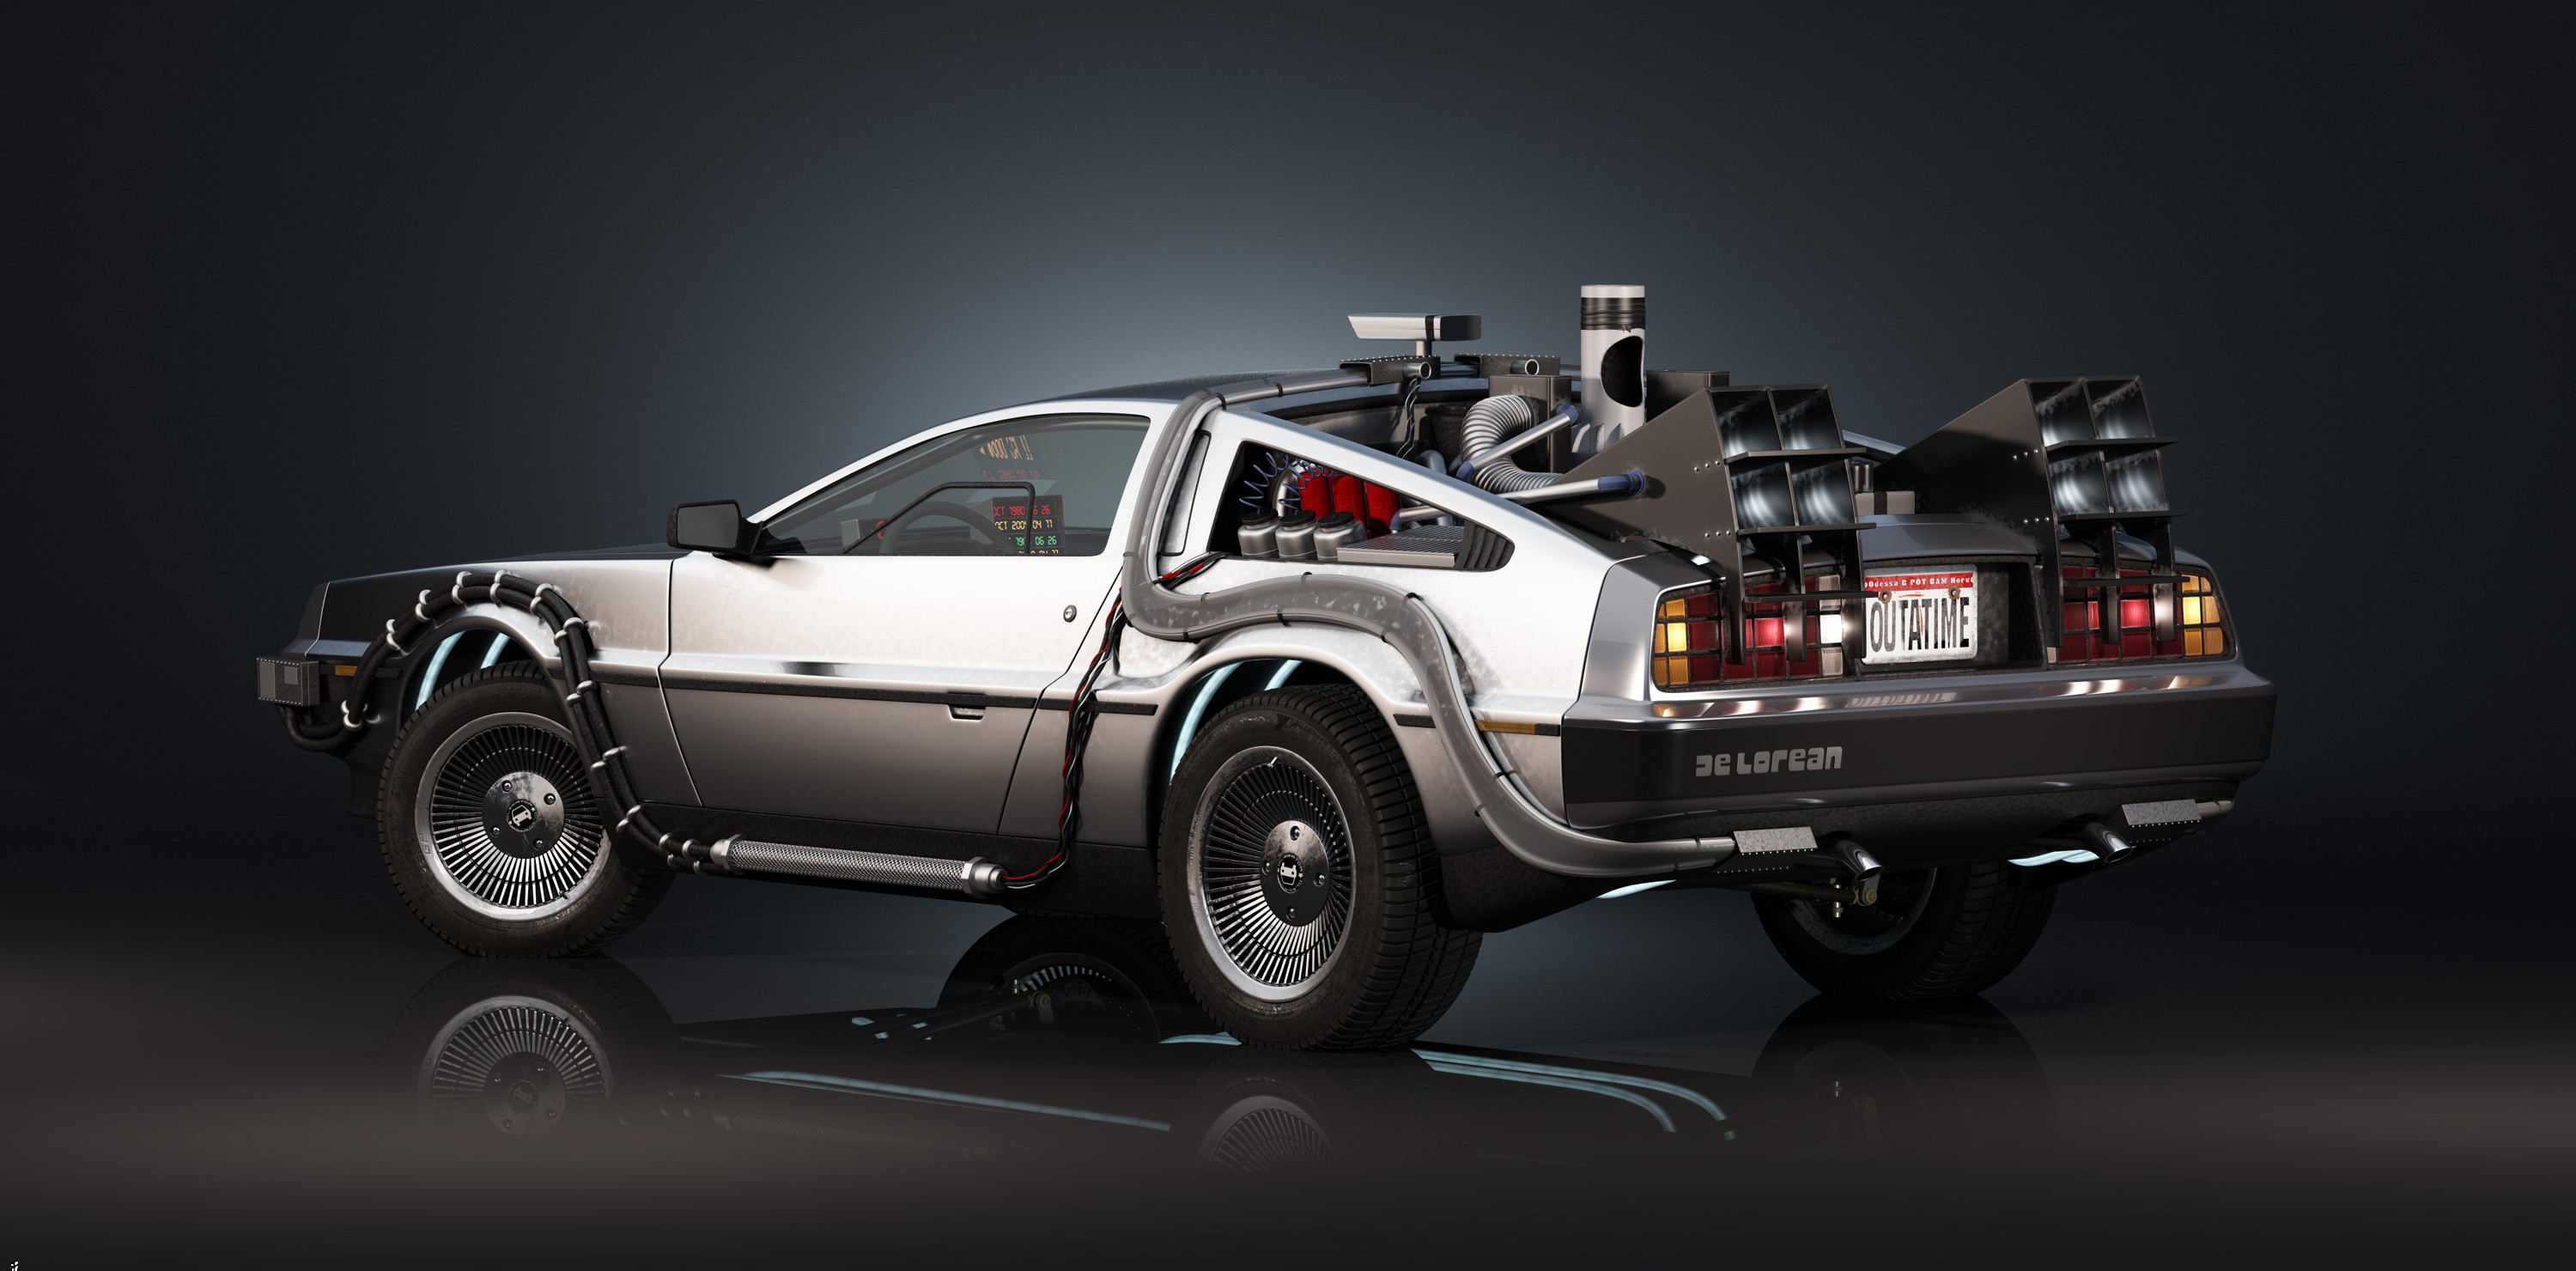 Delorean Back To The Future Wallpaper